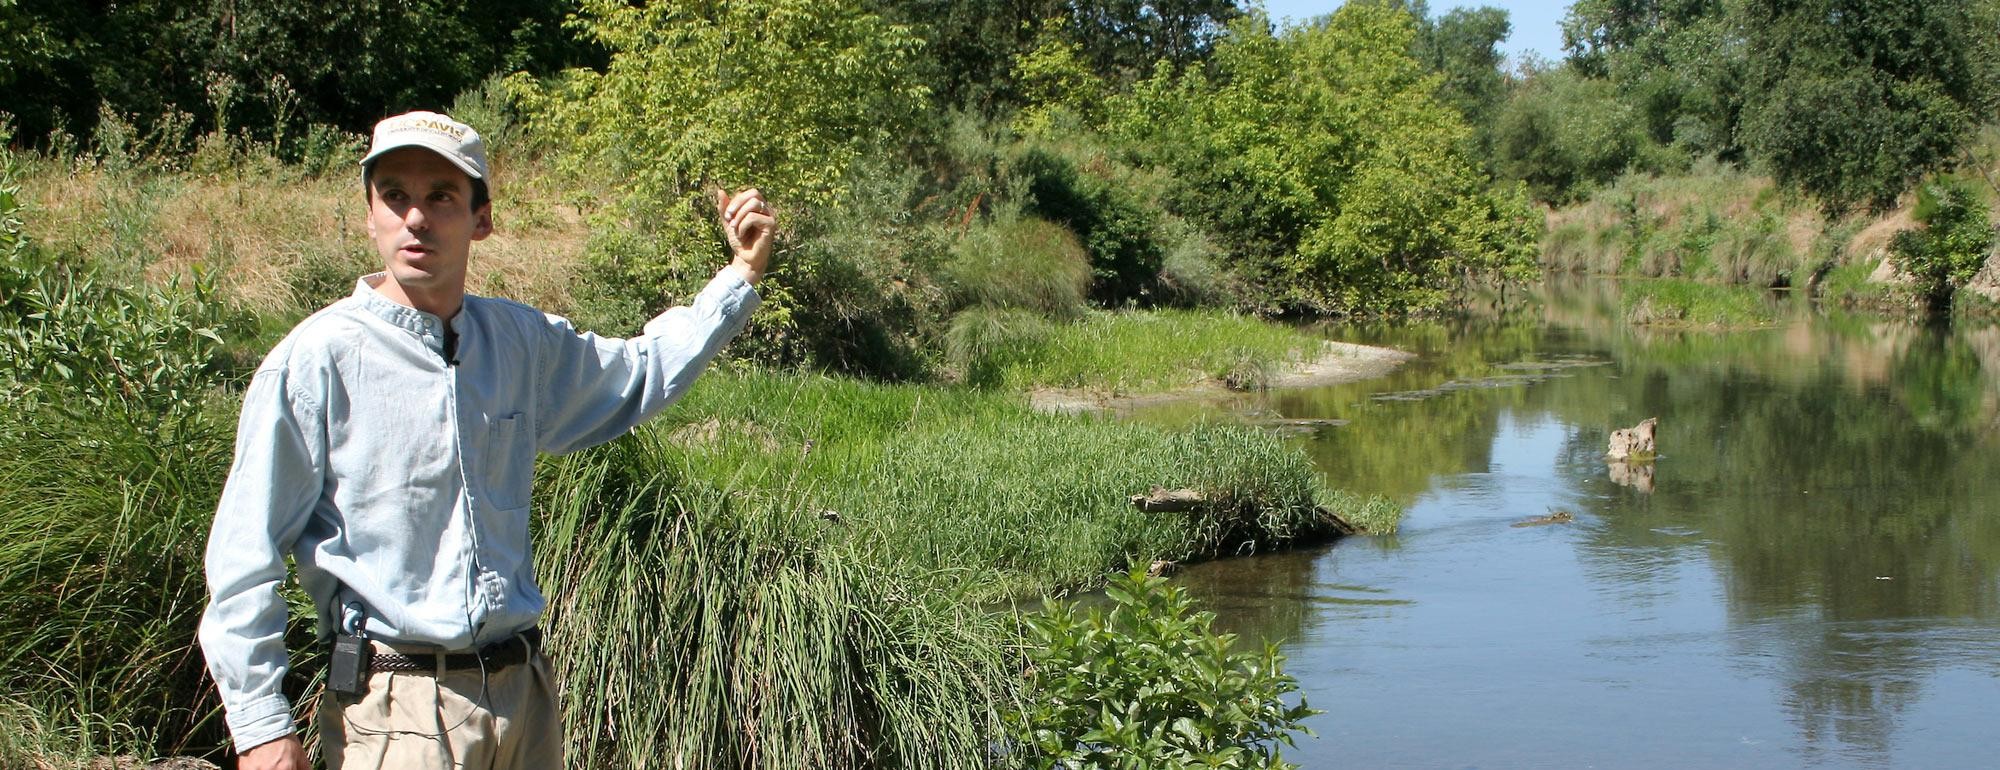 A UC Davis researcher points at a wetlands areas behind him